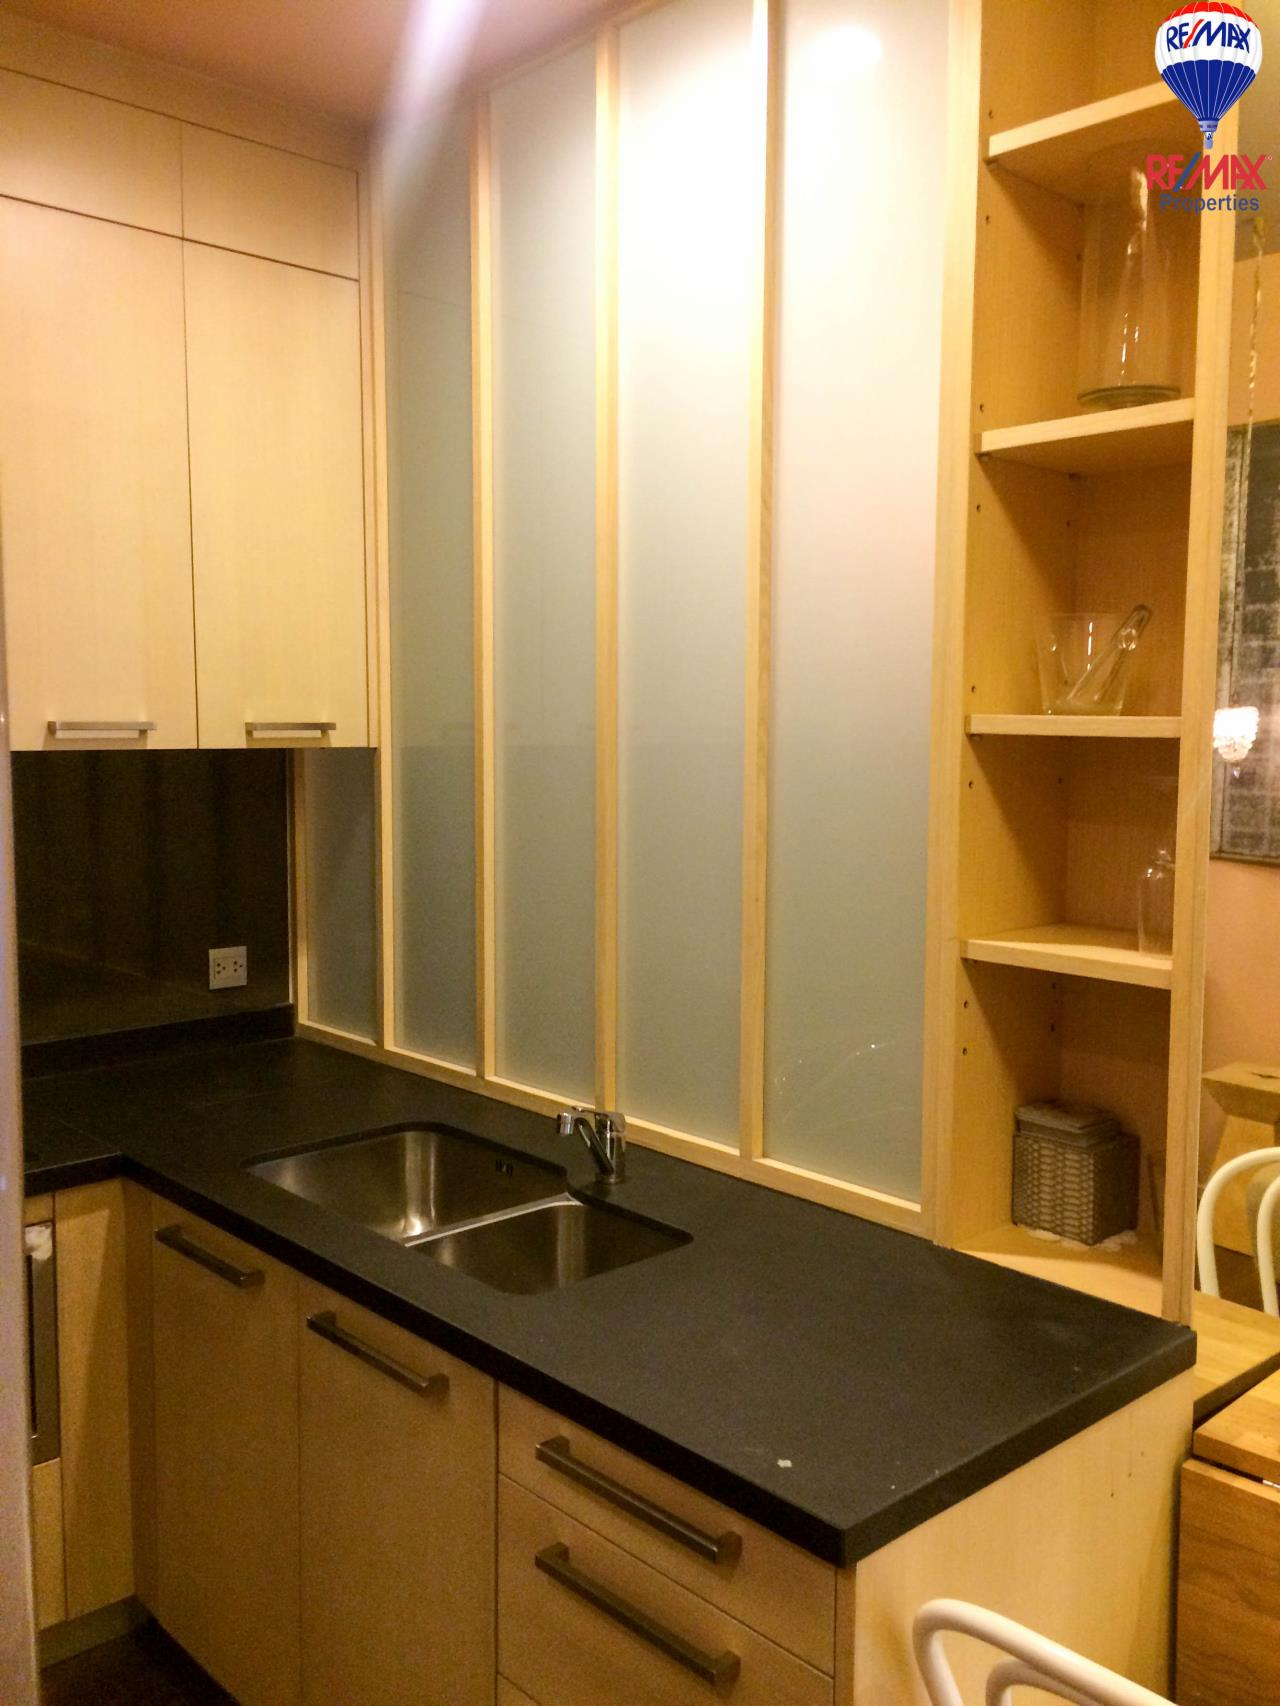 RE/MAX Properties Agency's 2 Bedrooms 86 Sq.M. for rent in Quattro by Sansiri 10